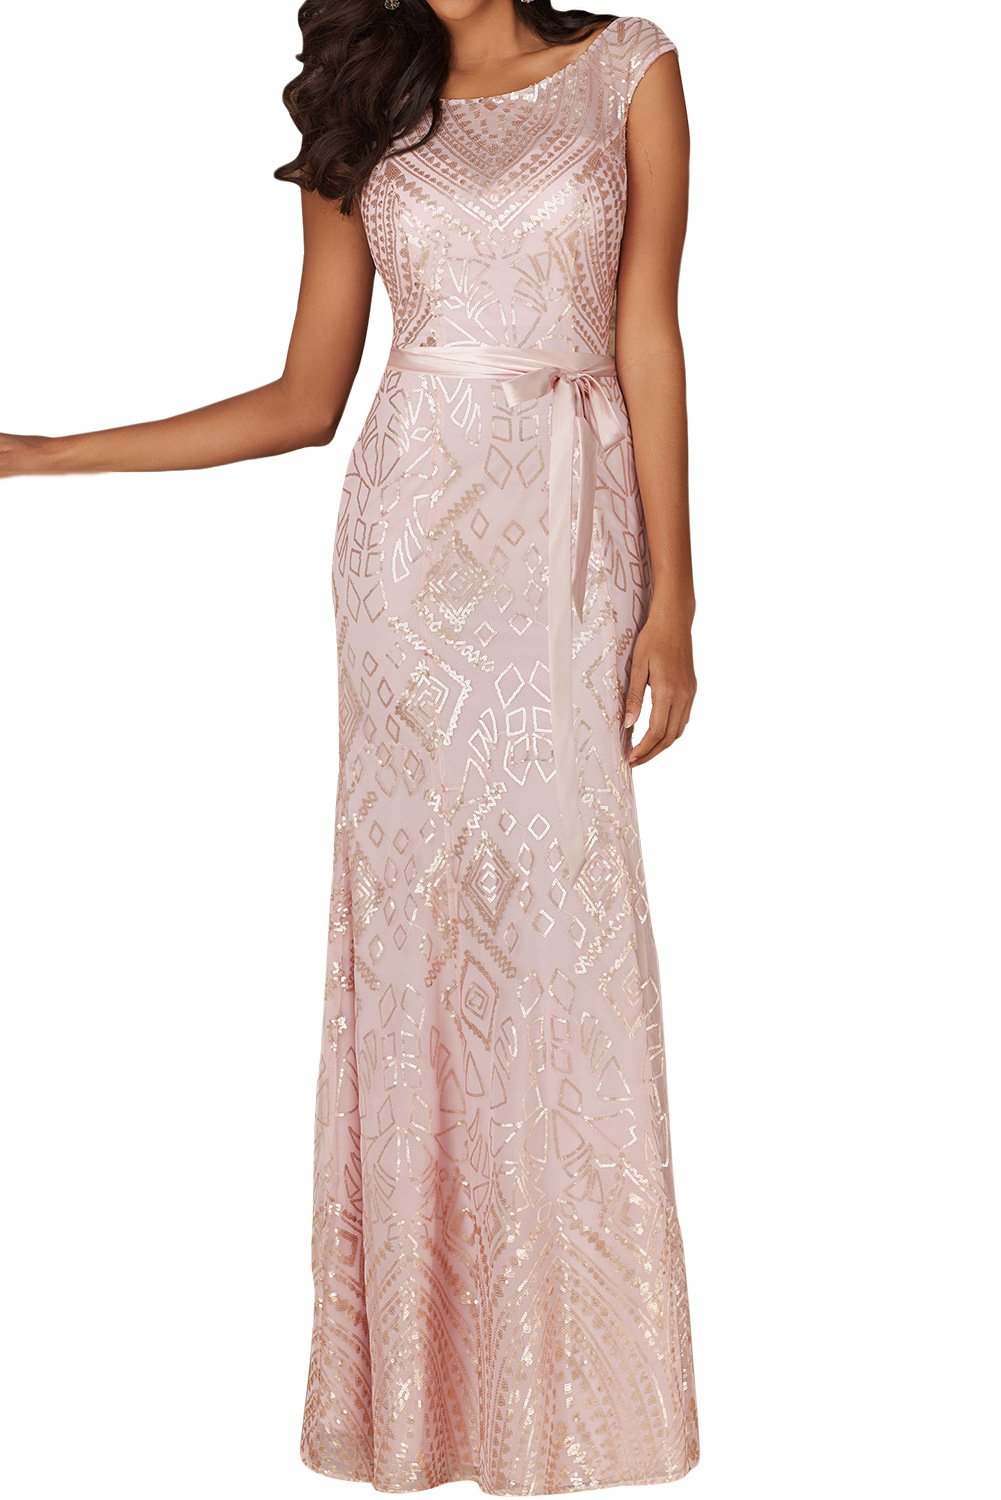 MARSEN Women's Sequins Backless Bridesmaid Dress Long Boat Neck Prom Gown Style 3 Size L